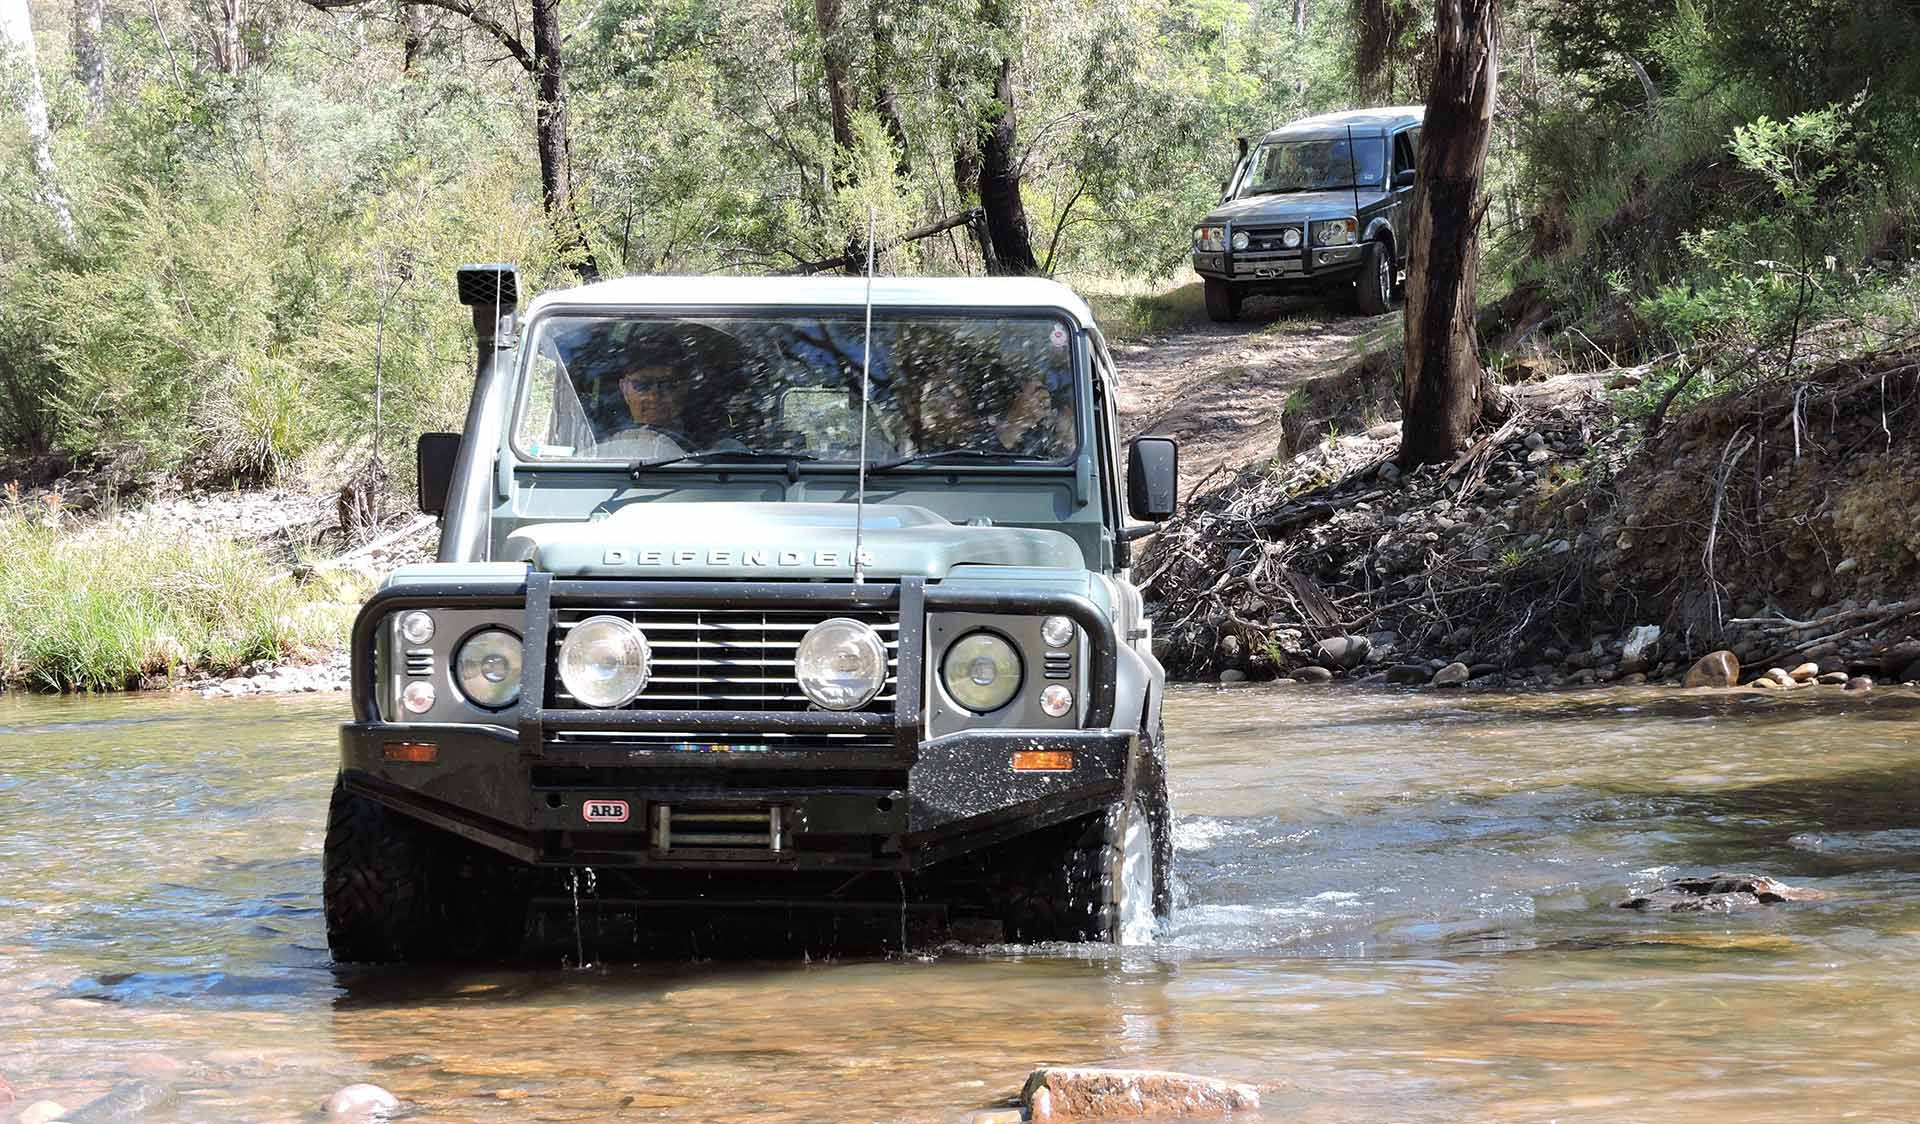 A Land Rover Defender attempts a river crossing in the Alpine National Park.